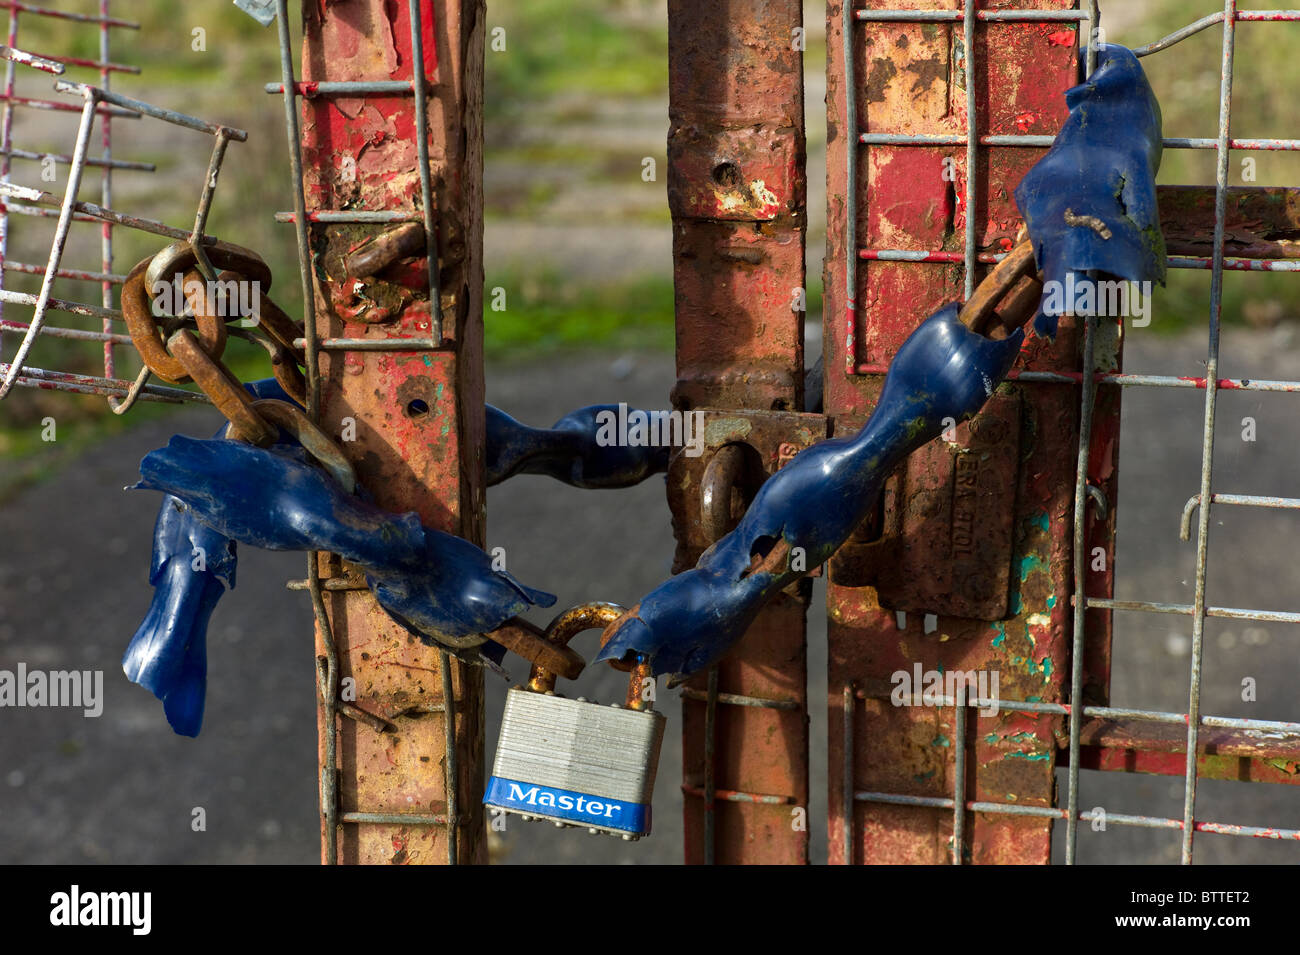 A chained up entrance gate to the wasteland site of a bankrupt business in the recession - Stock Image